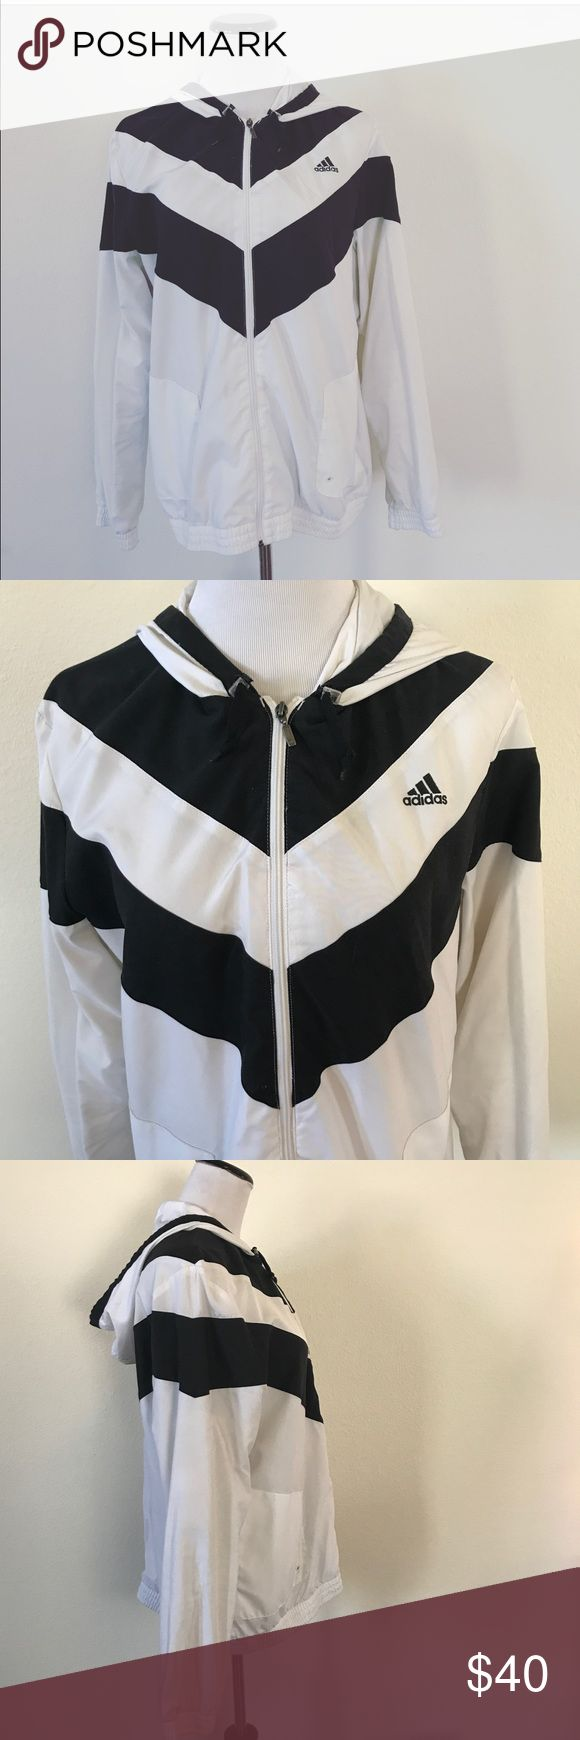 ADIDAS RETRO WINDBREAKER, BLK\WHT CHEVRON PRINT Cool retro Adidas windbreaker, black and white chevron, size XL.  Fits like a women's large and XL. I'm a medium and can wear it, just a little wide.  A couple of little spots on sleeve, see last pic.  Please let me know if you have any questions! adidas Jackets & Coats